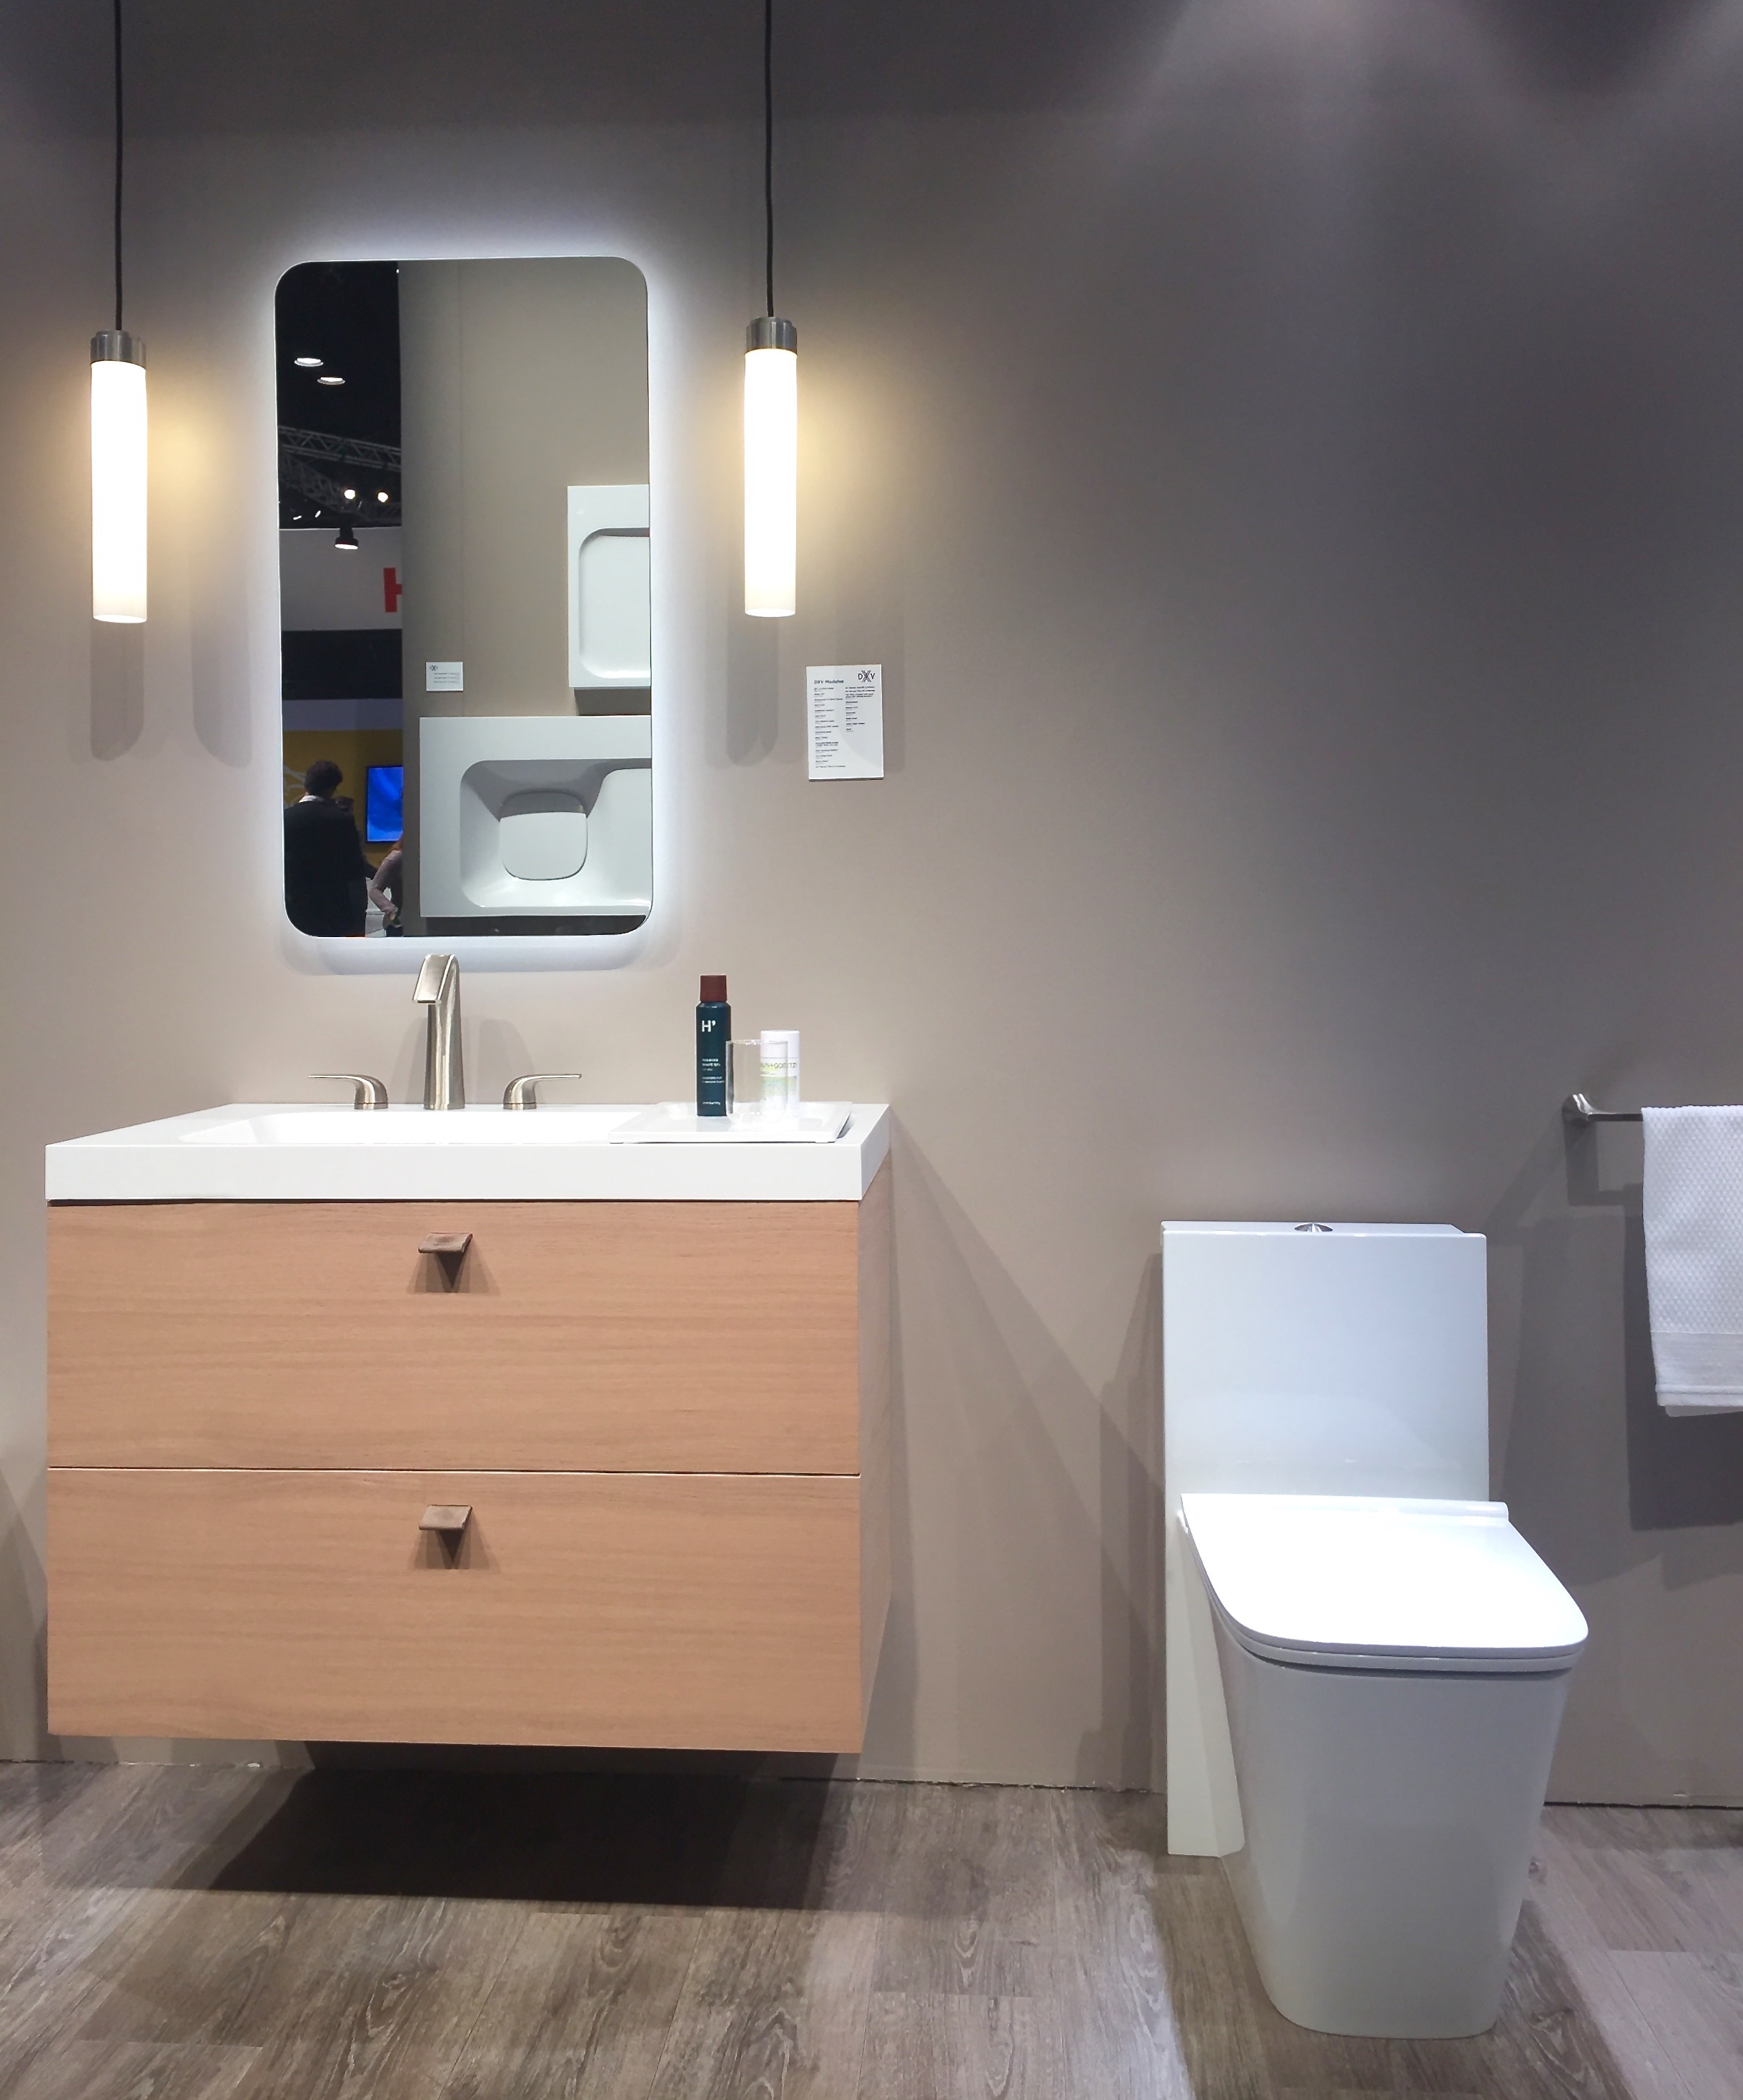 This second Modulus vignette is pretty much exactly what I'd like to do in the Austin Suite bathroom. Love the added storage capacity of this wall-mount cabinet and this very chic toilet.